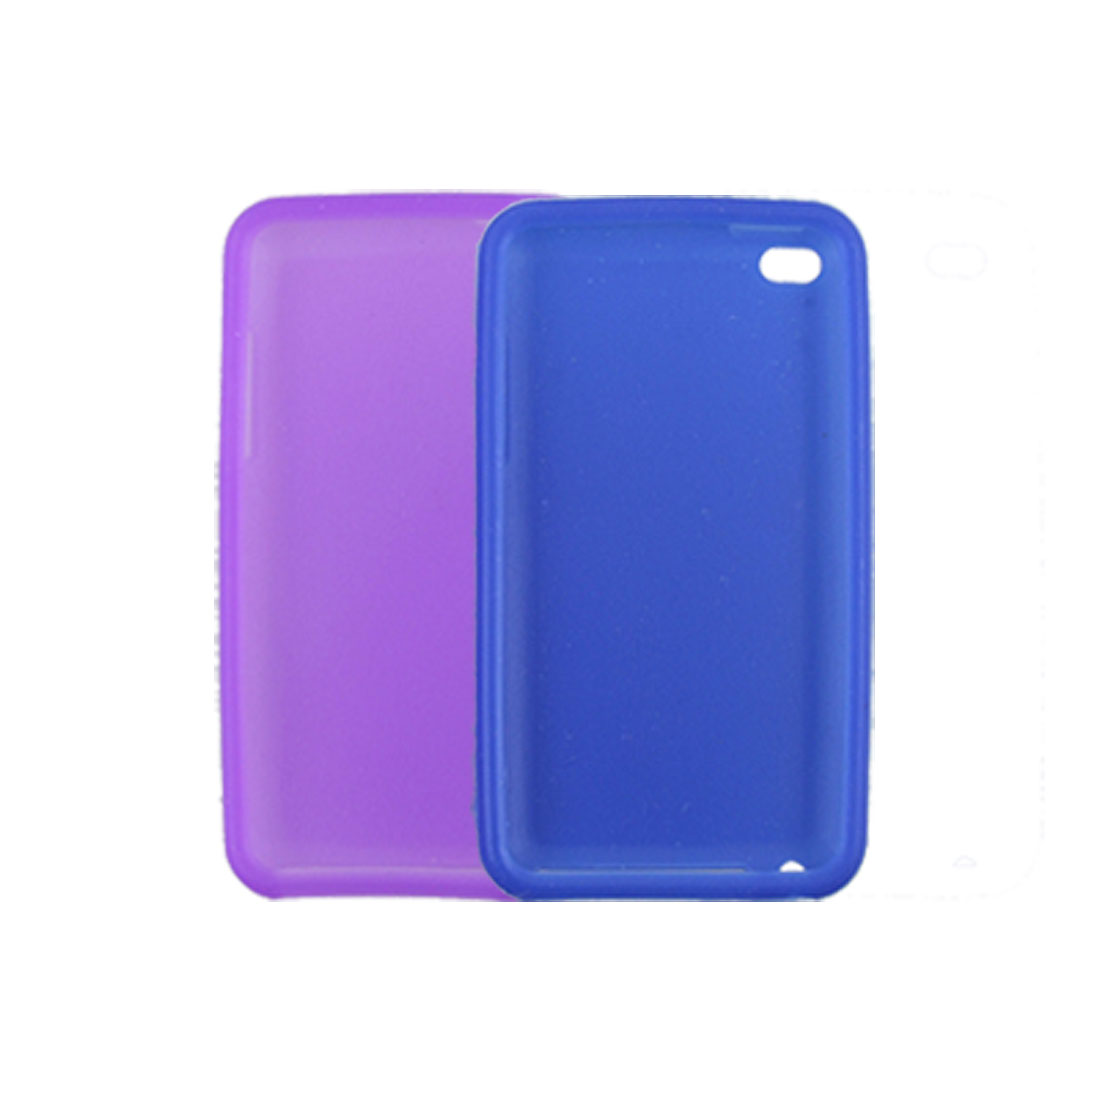 2 Pcs Purple Blue Silicone Skin Case Guard for iPod Touch 4G